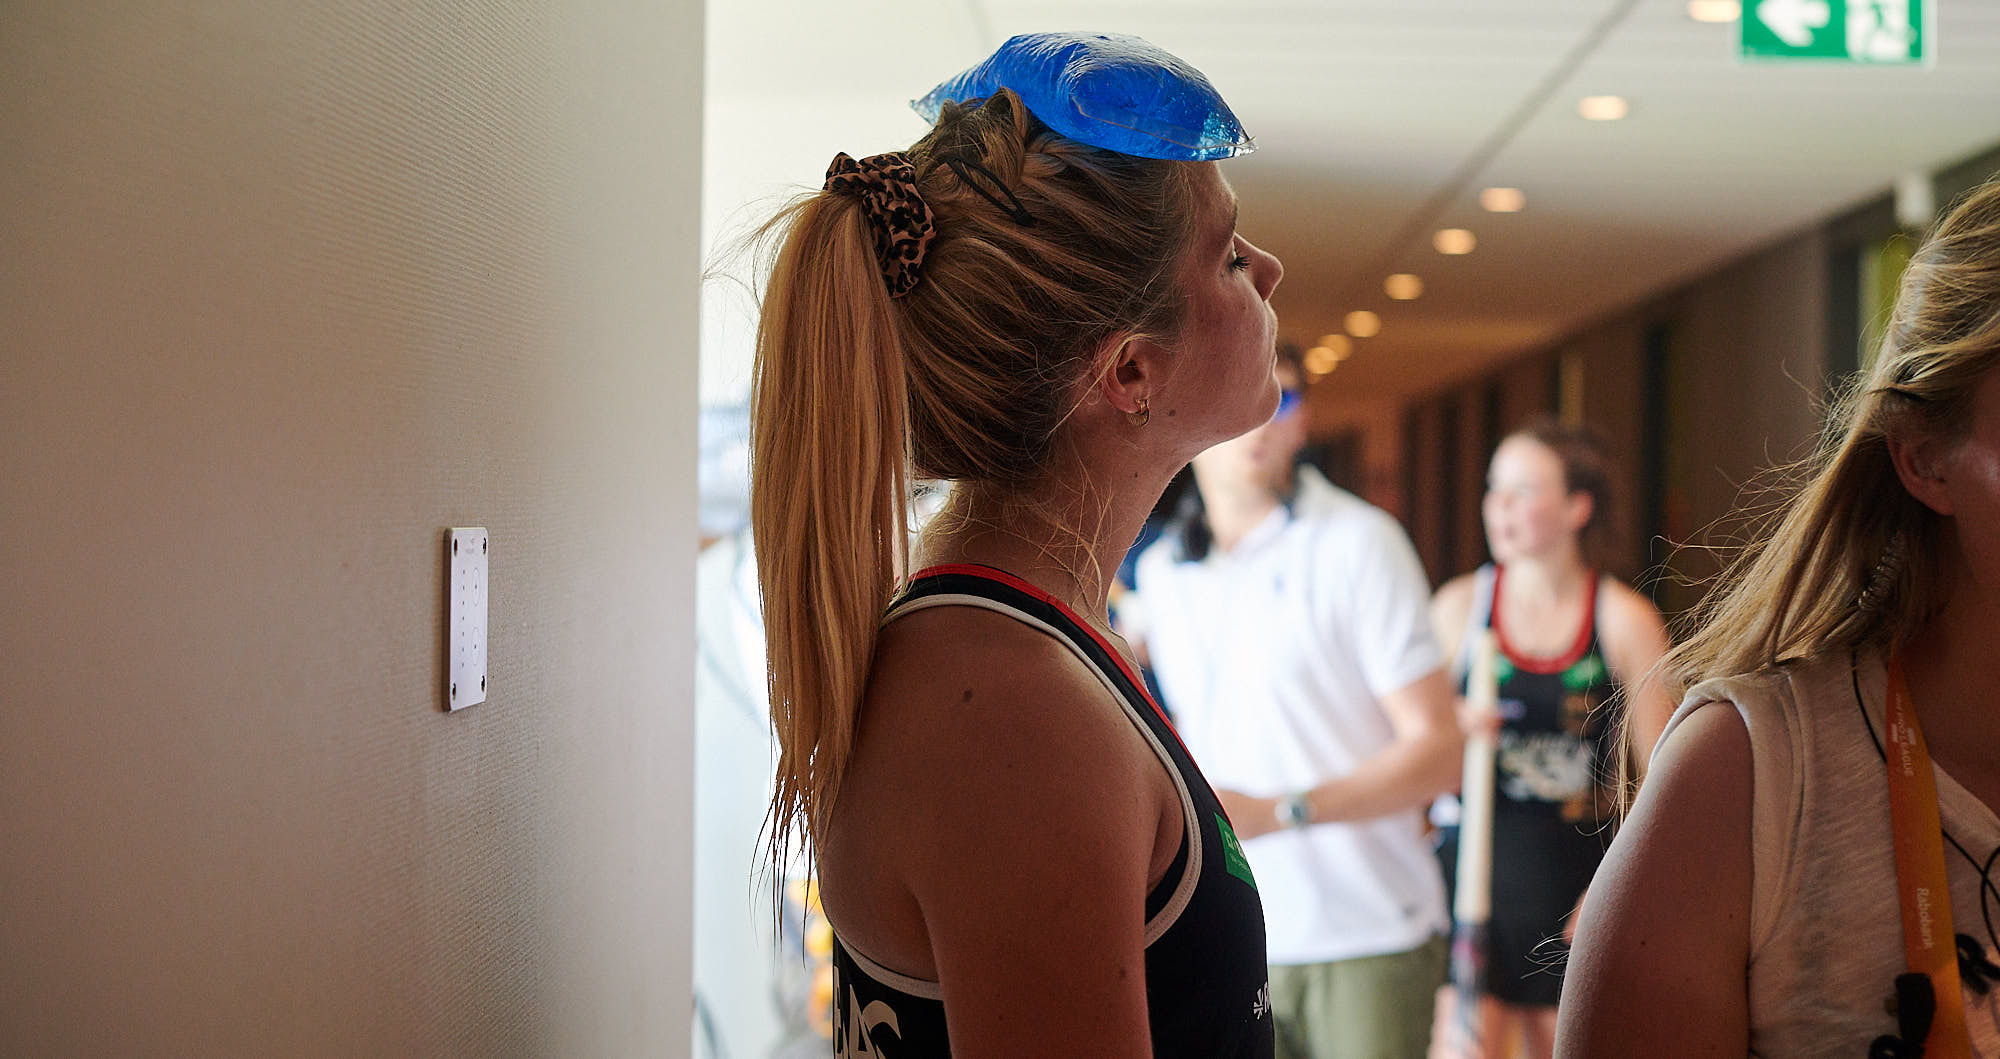 German national hockey team player puts ice on her forehead before FIH Pro league finals in Amsterdam